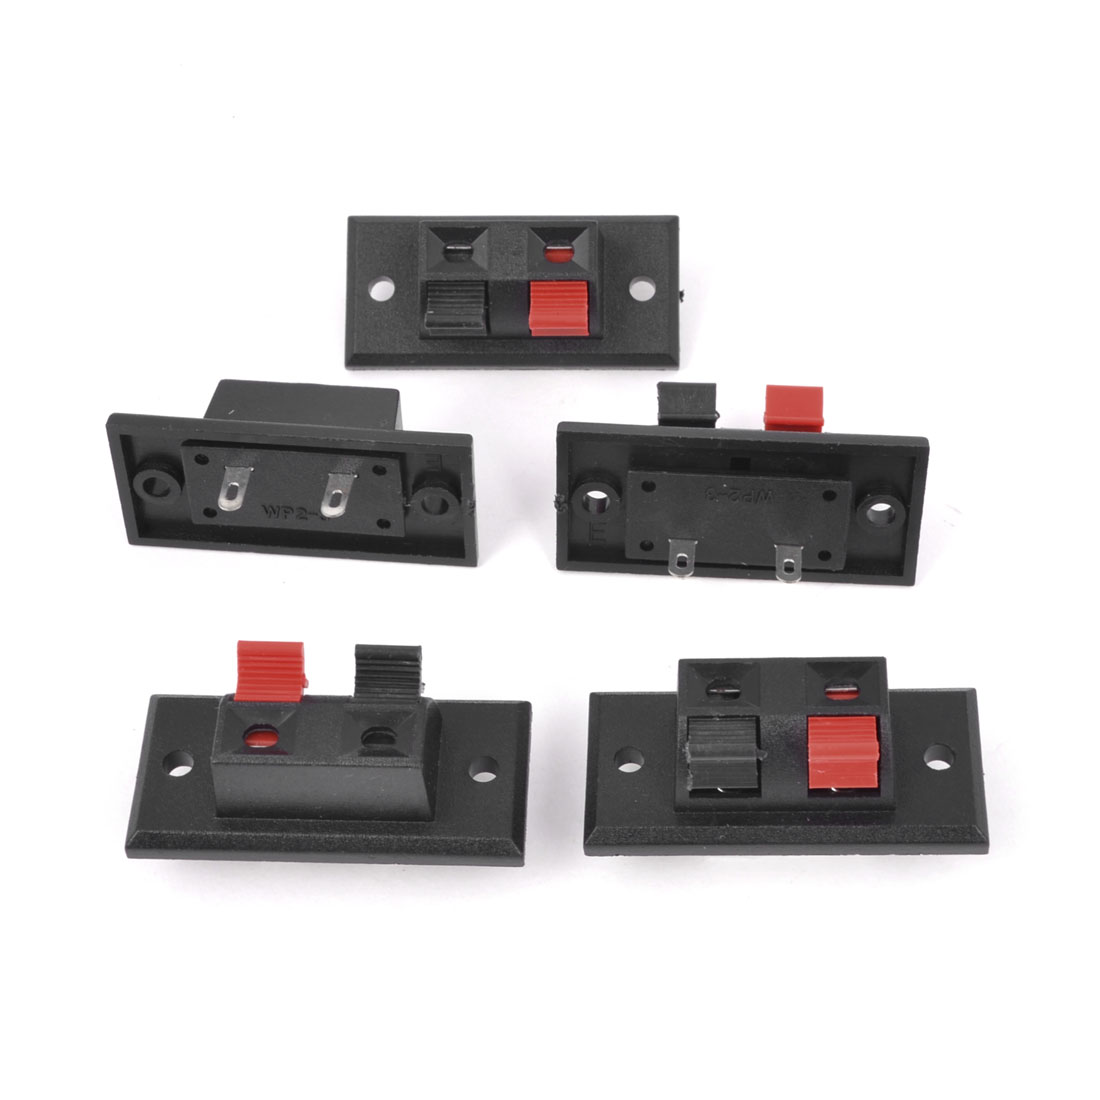 5Pcs 2 Way Large Stereo Speaker Plate Terminal Strip Push Type Connector Block